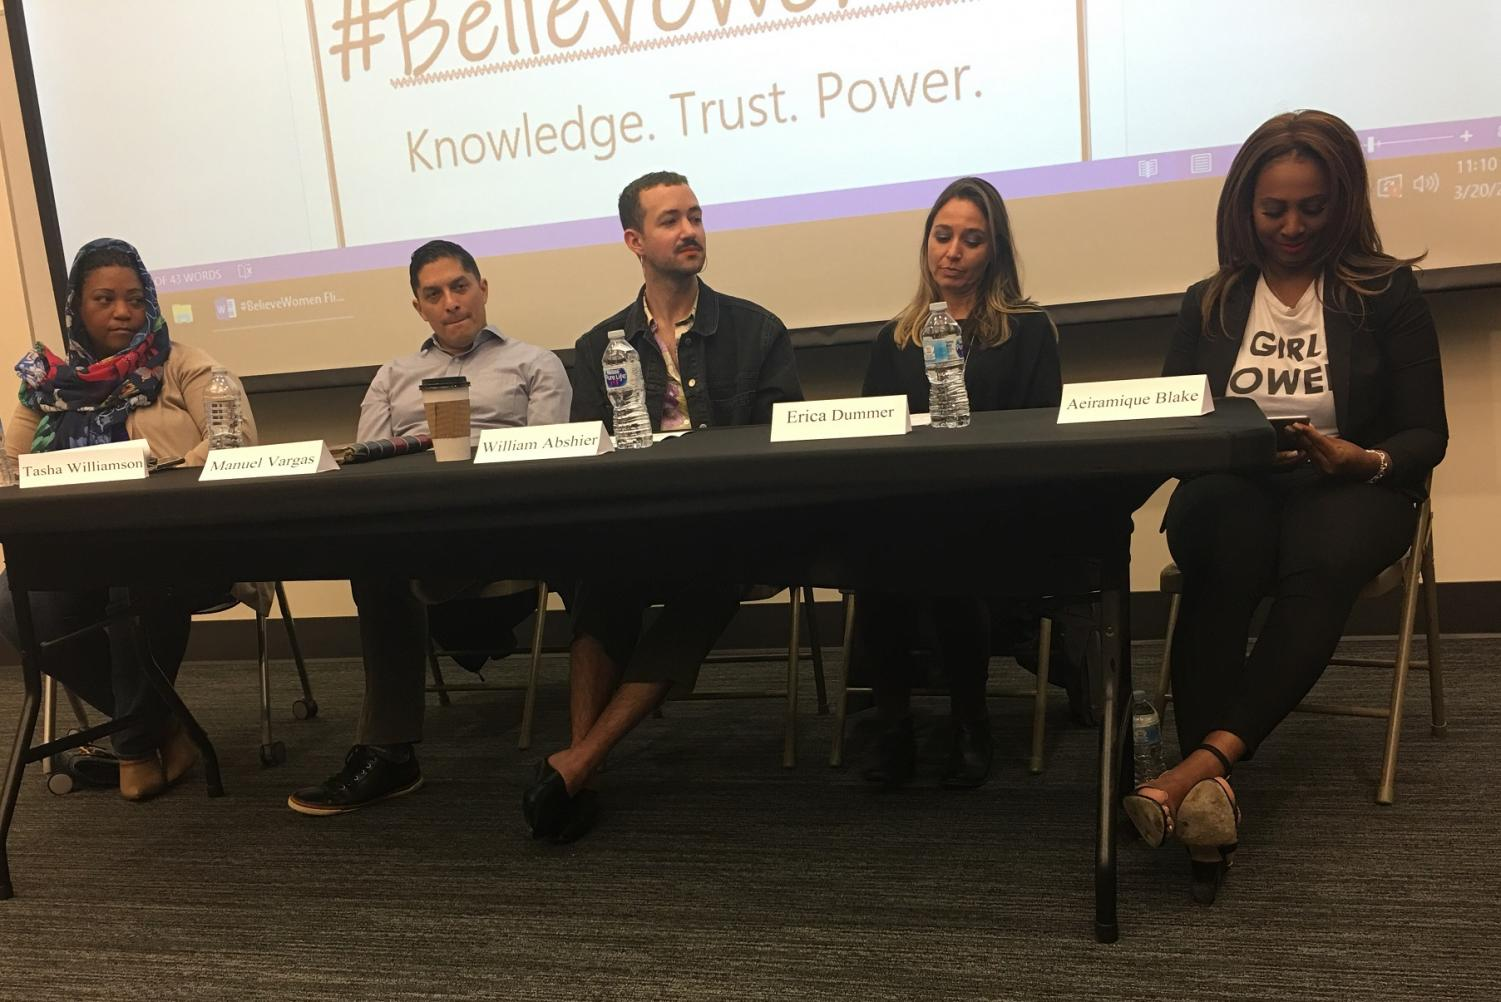 Five experienced panelists discuss the meaning of #BelieveWomen By Uyen Pham/City College